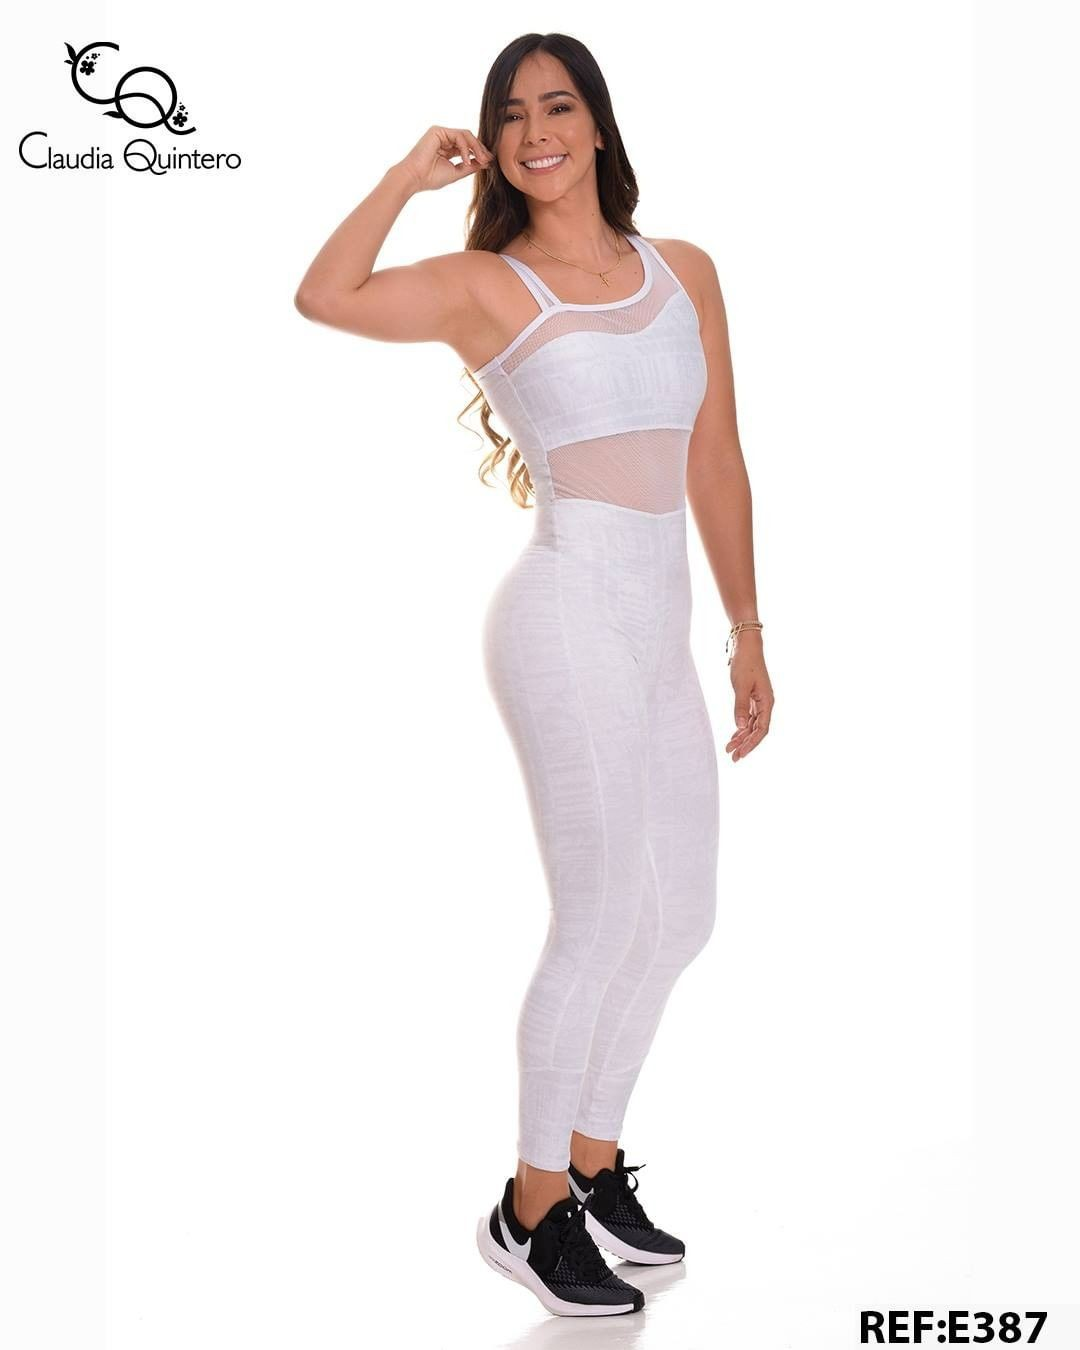 white dresses ideas with dress, hot legs, costumes designs